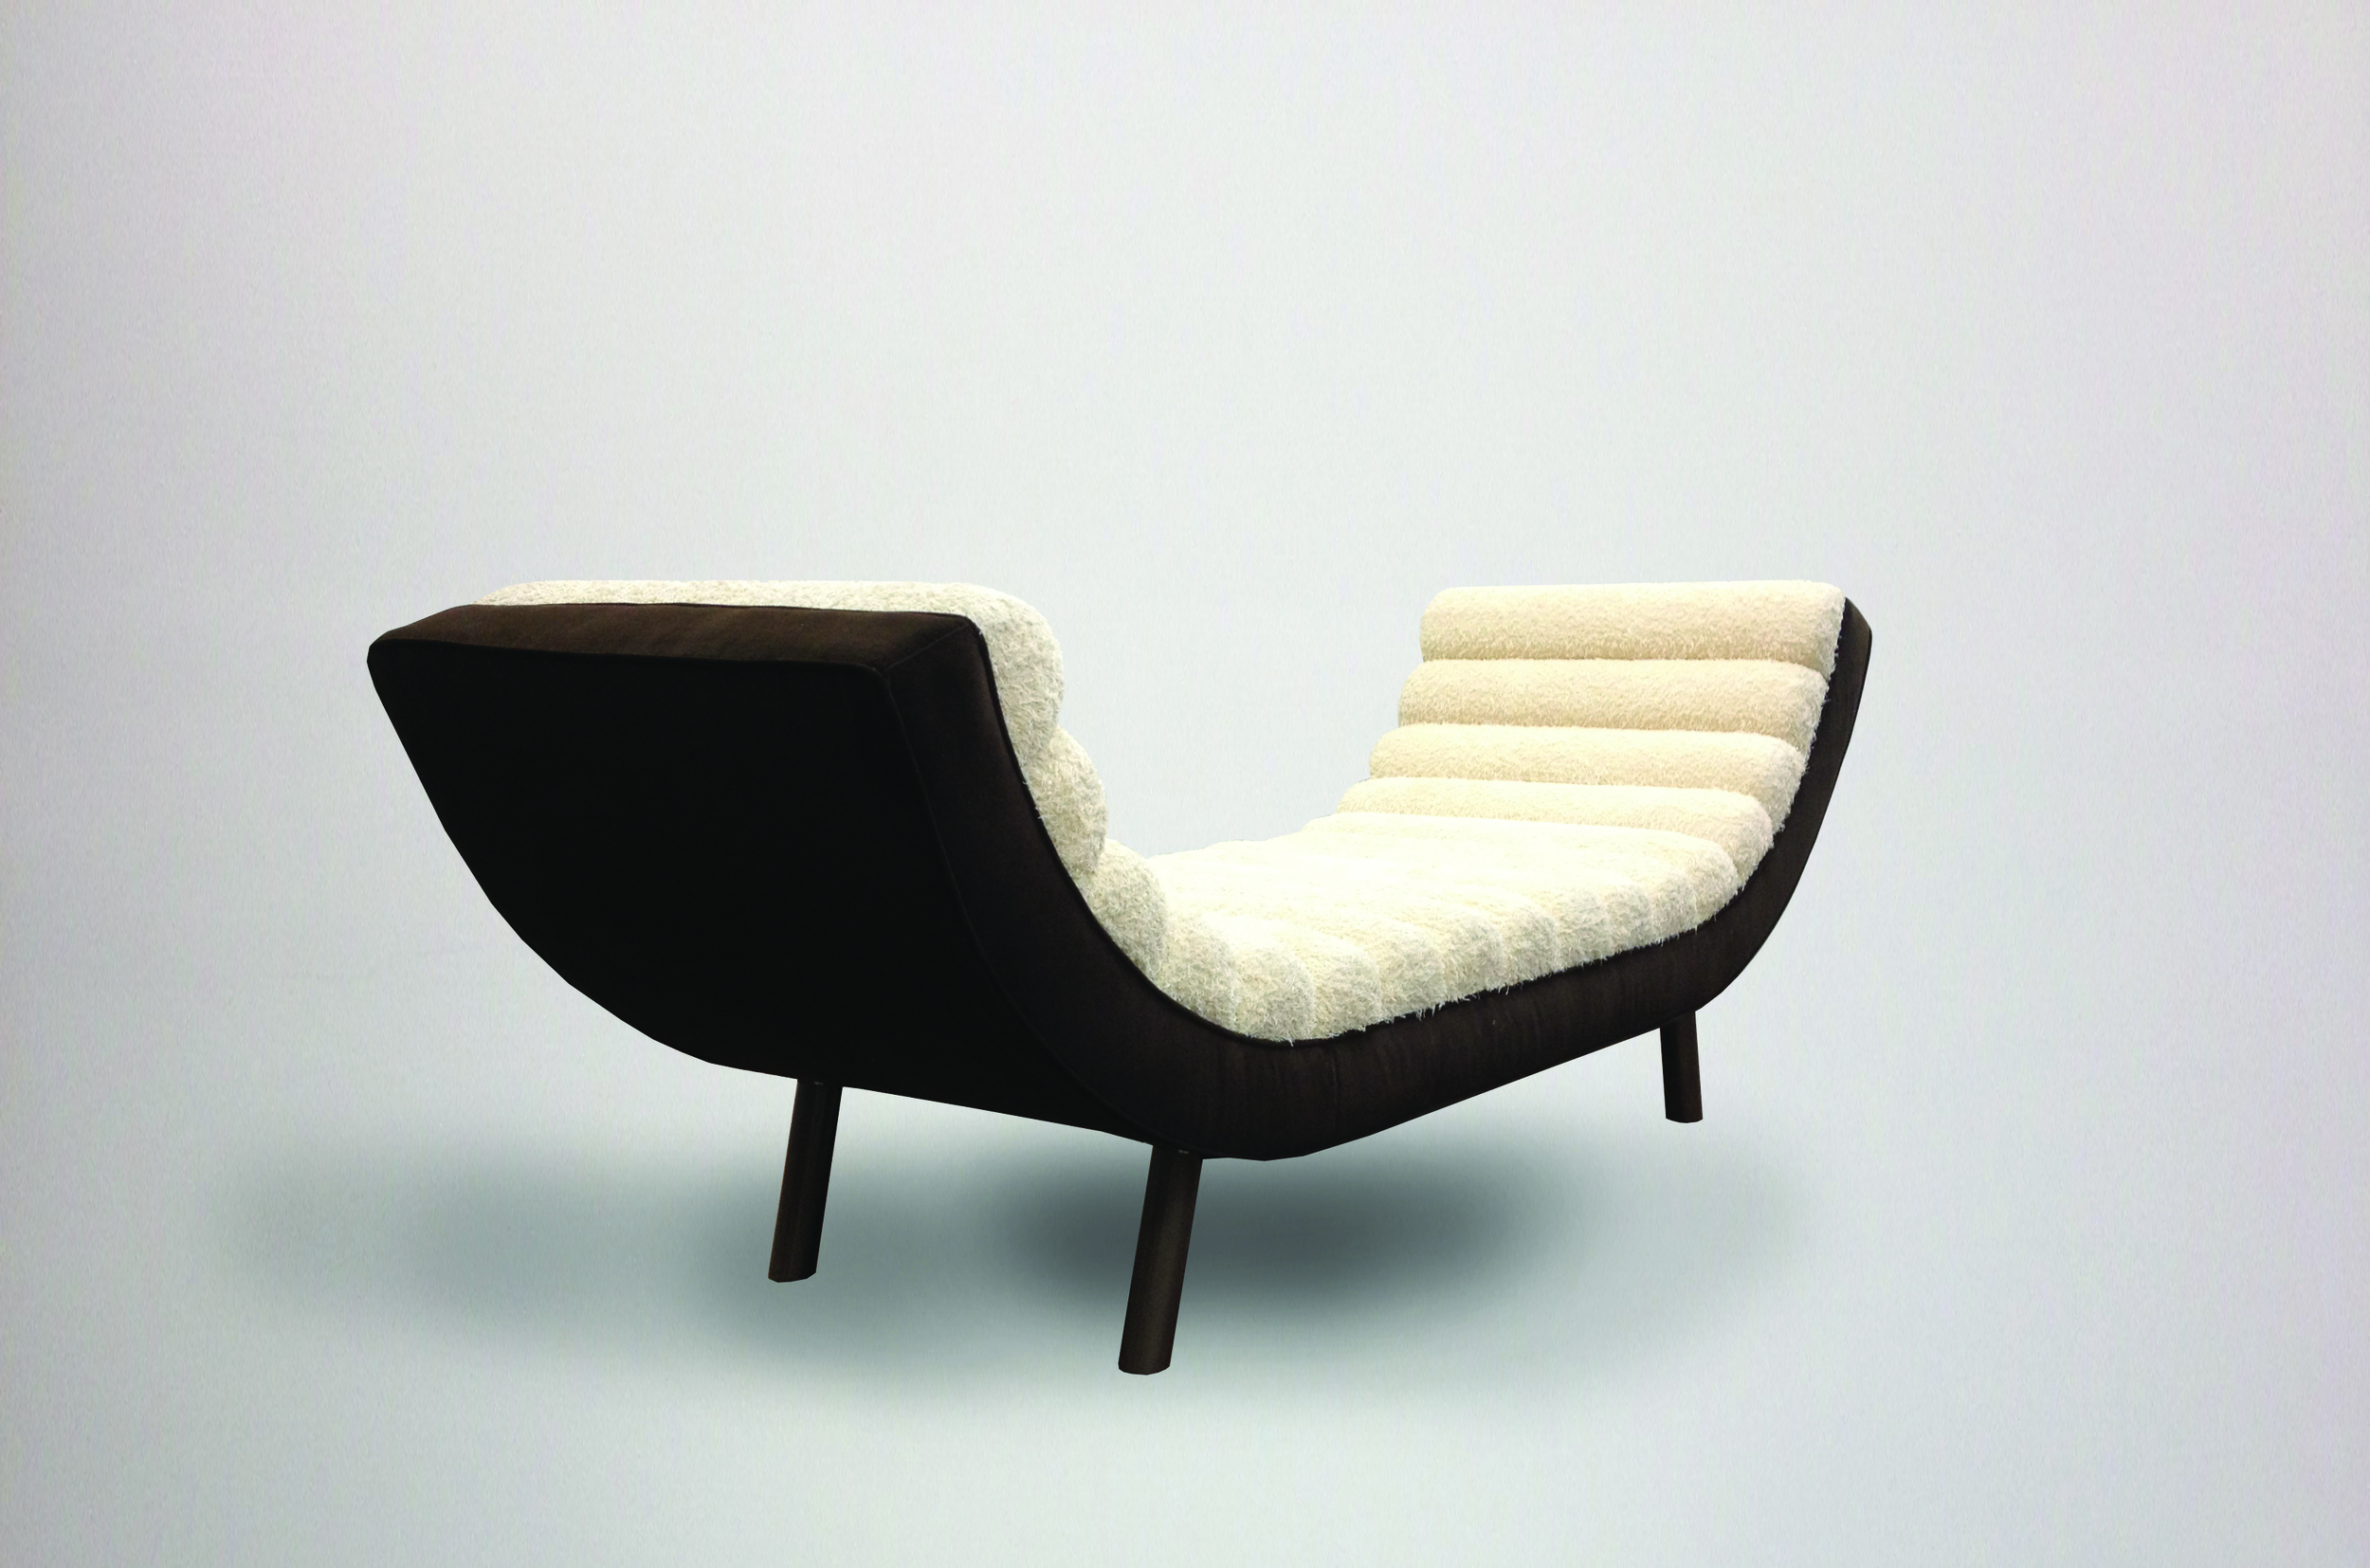 The Caterpillar Chaise